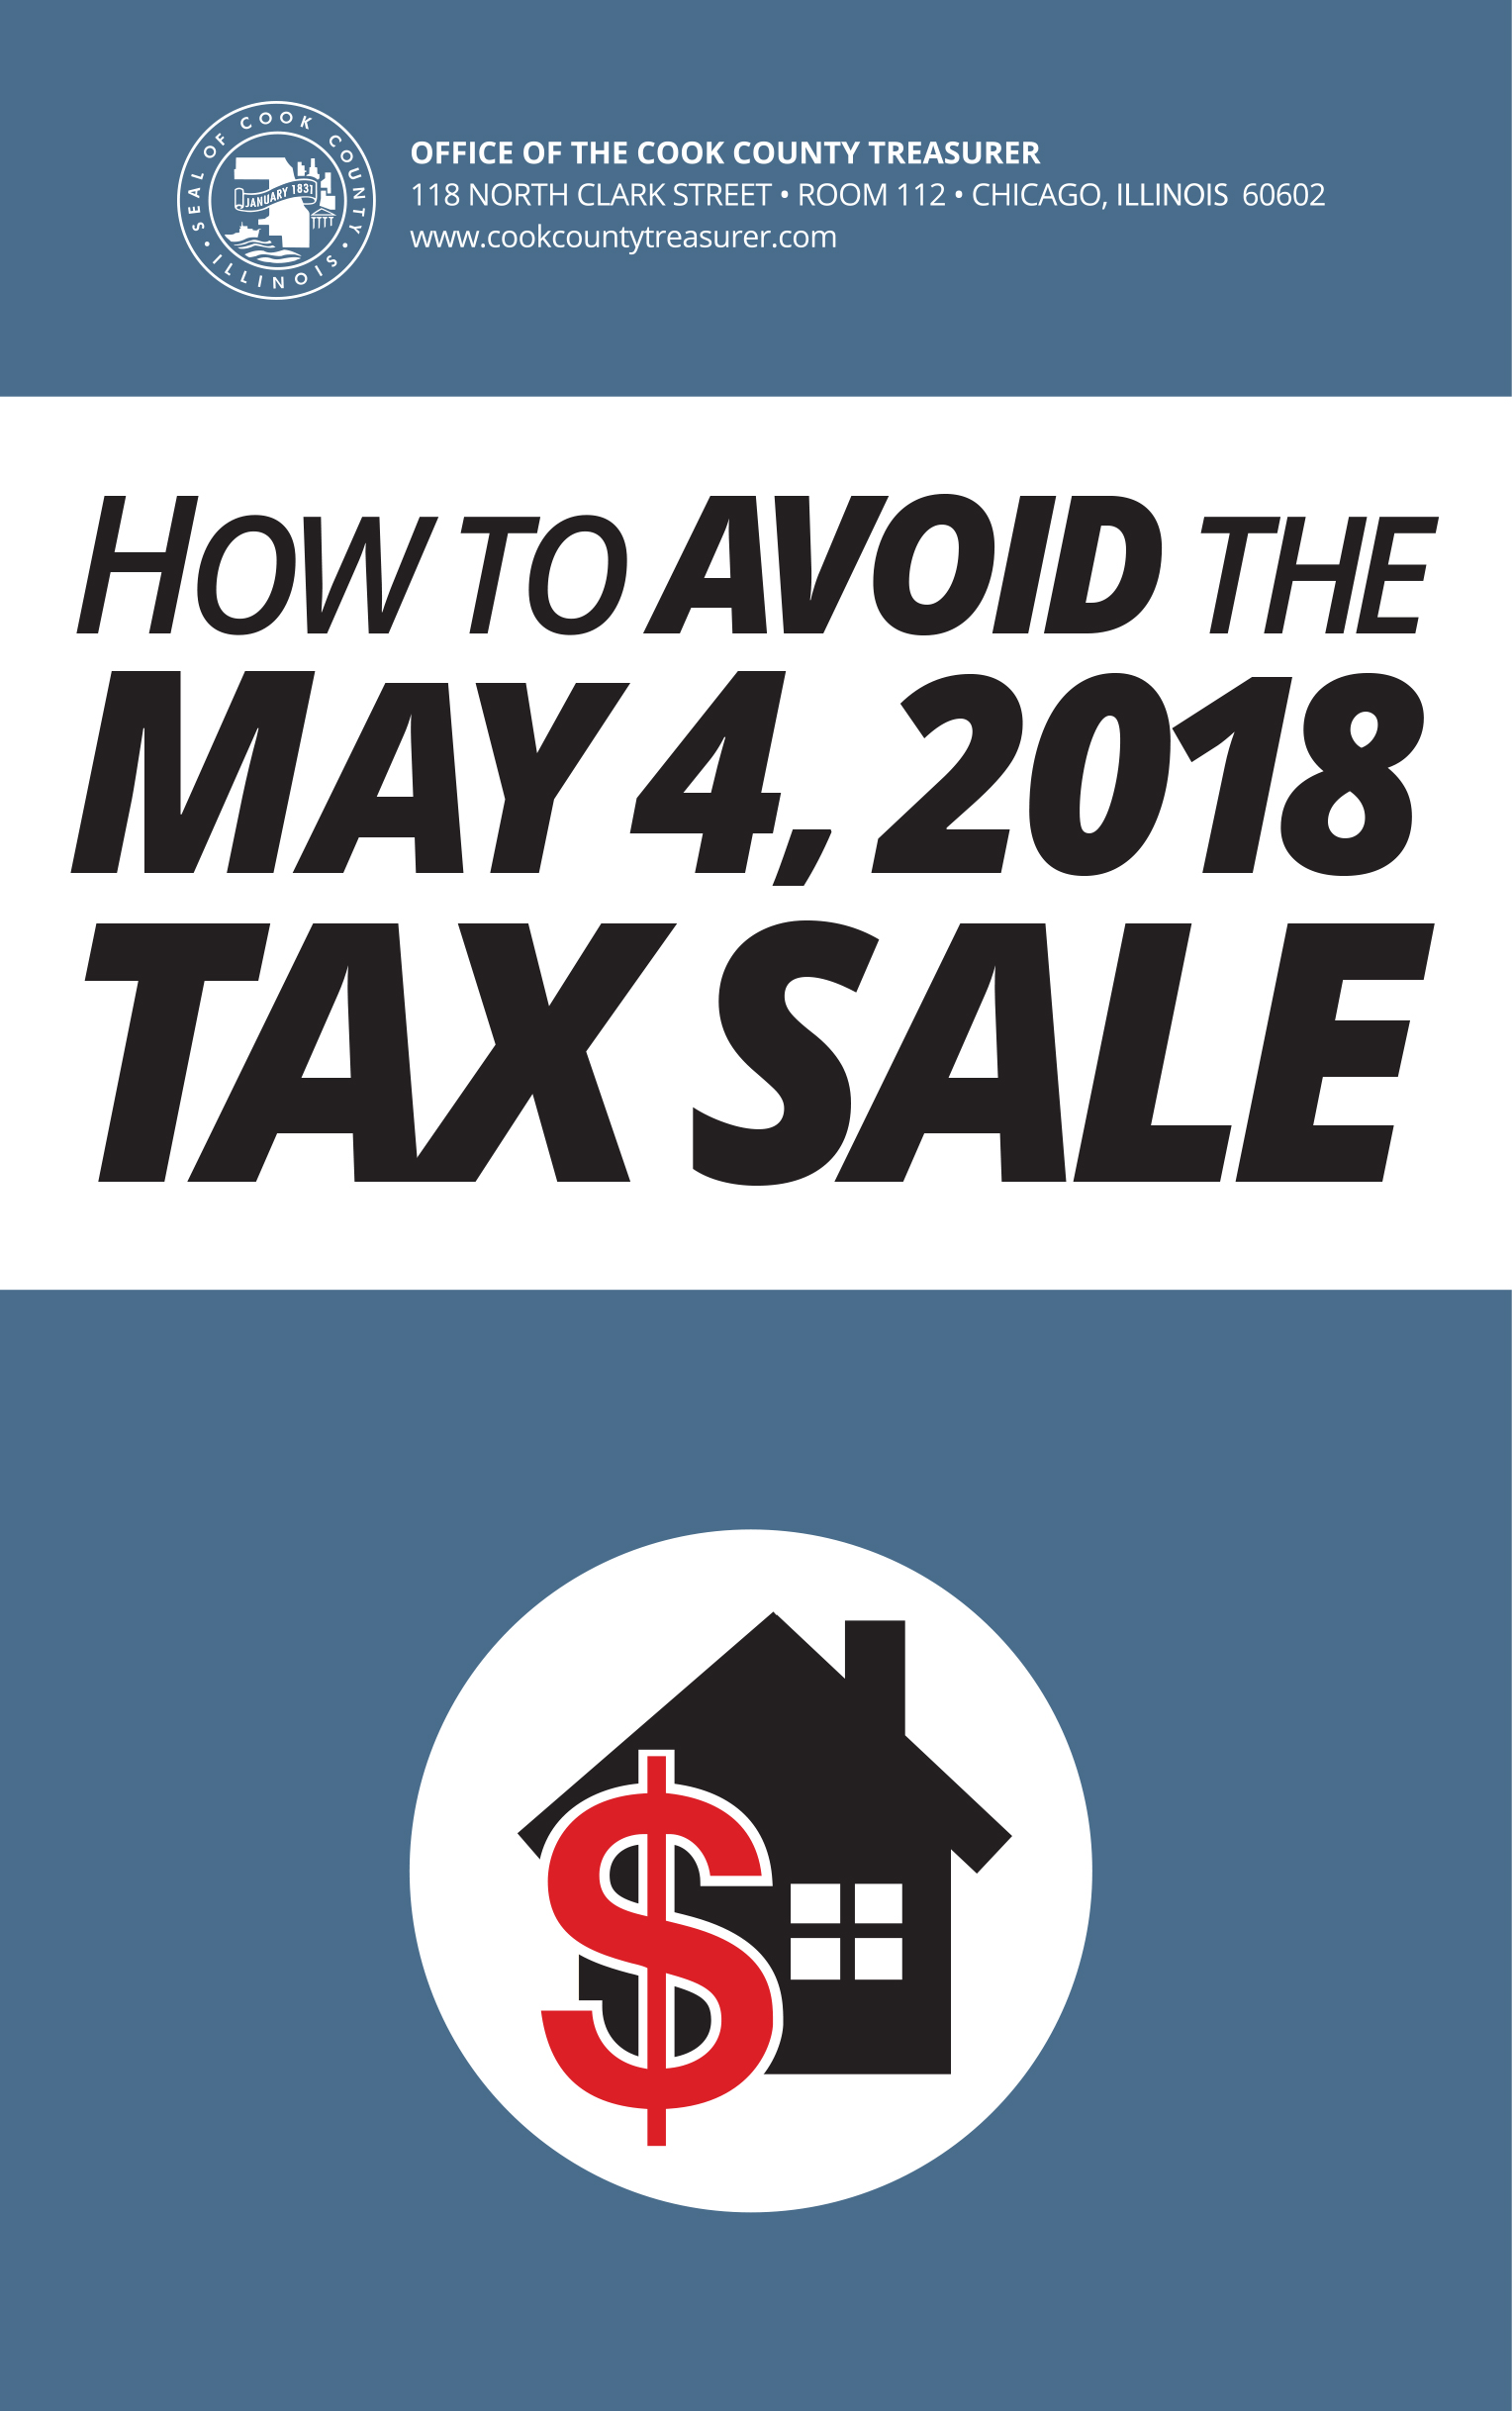 How_to_Avoid_Tax_Sale_5-4-18-1.jpg